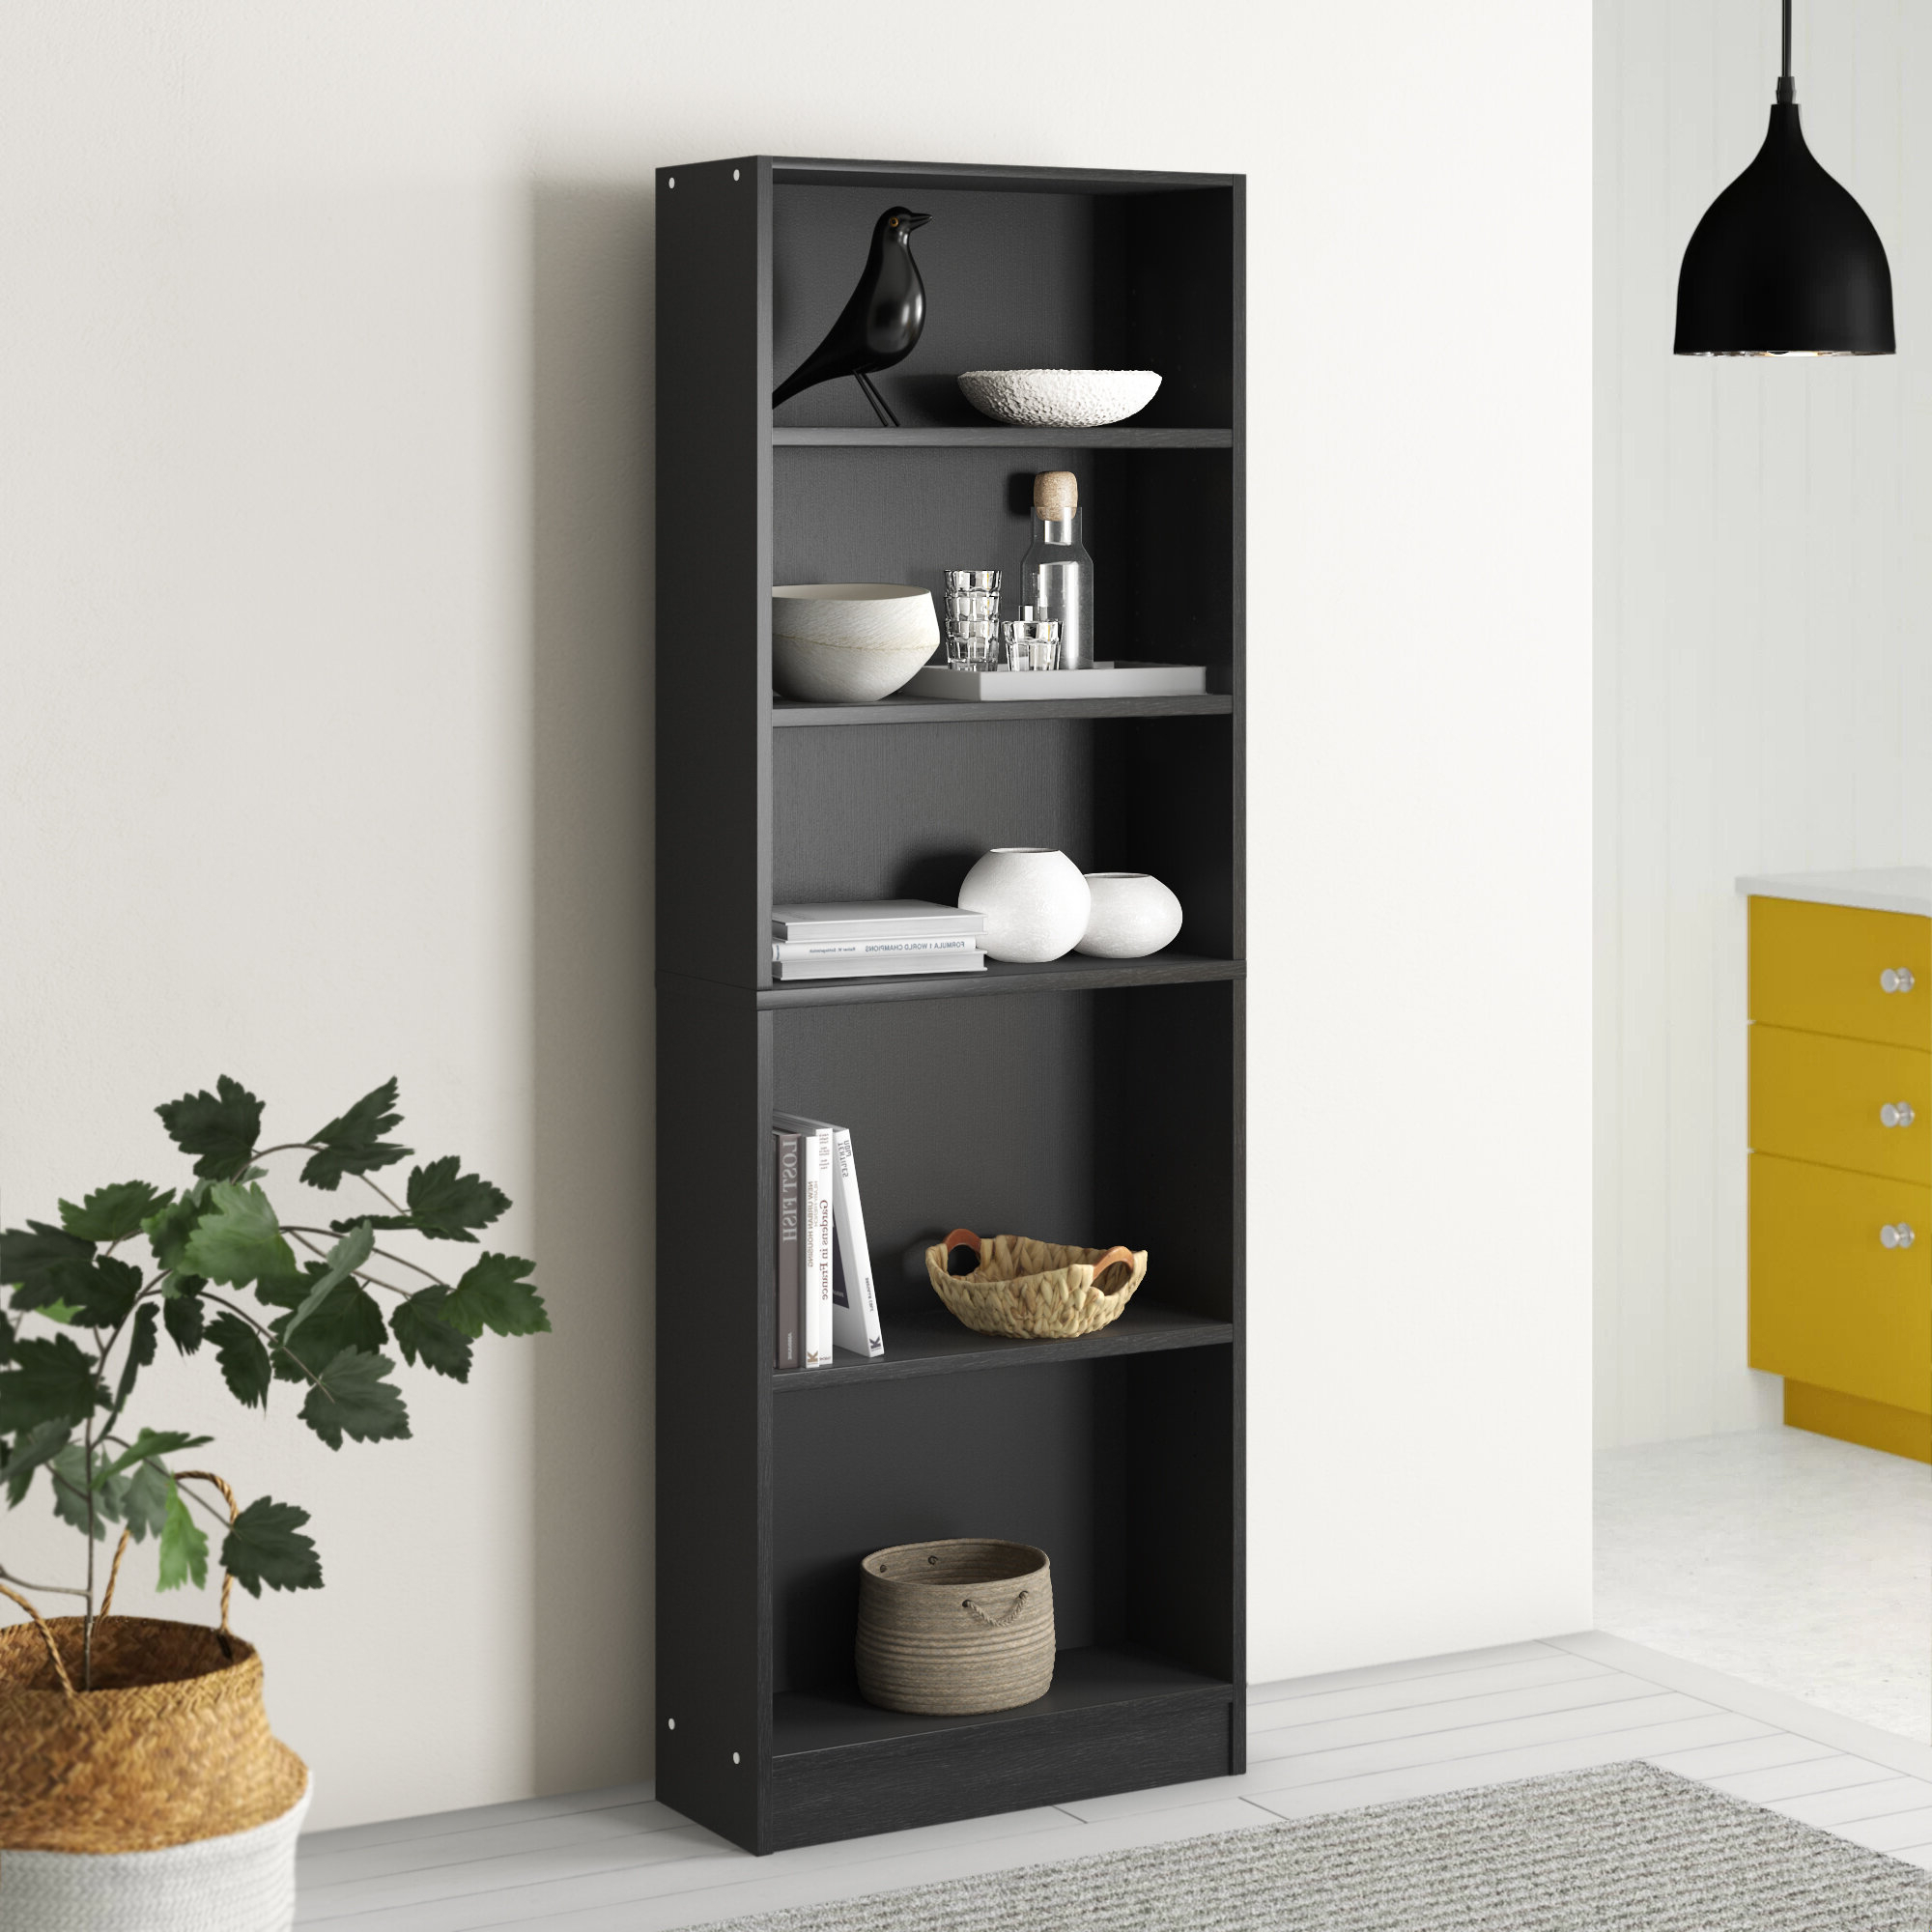 2020 Standard Bookcases Throughout Marva Standard Bookcase (View 2 of 20)